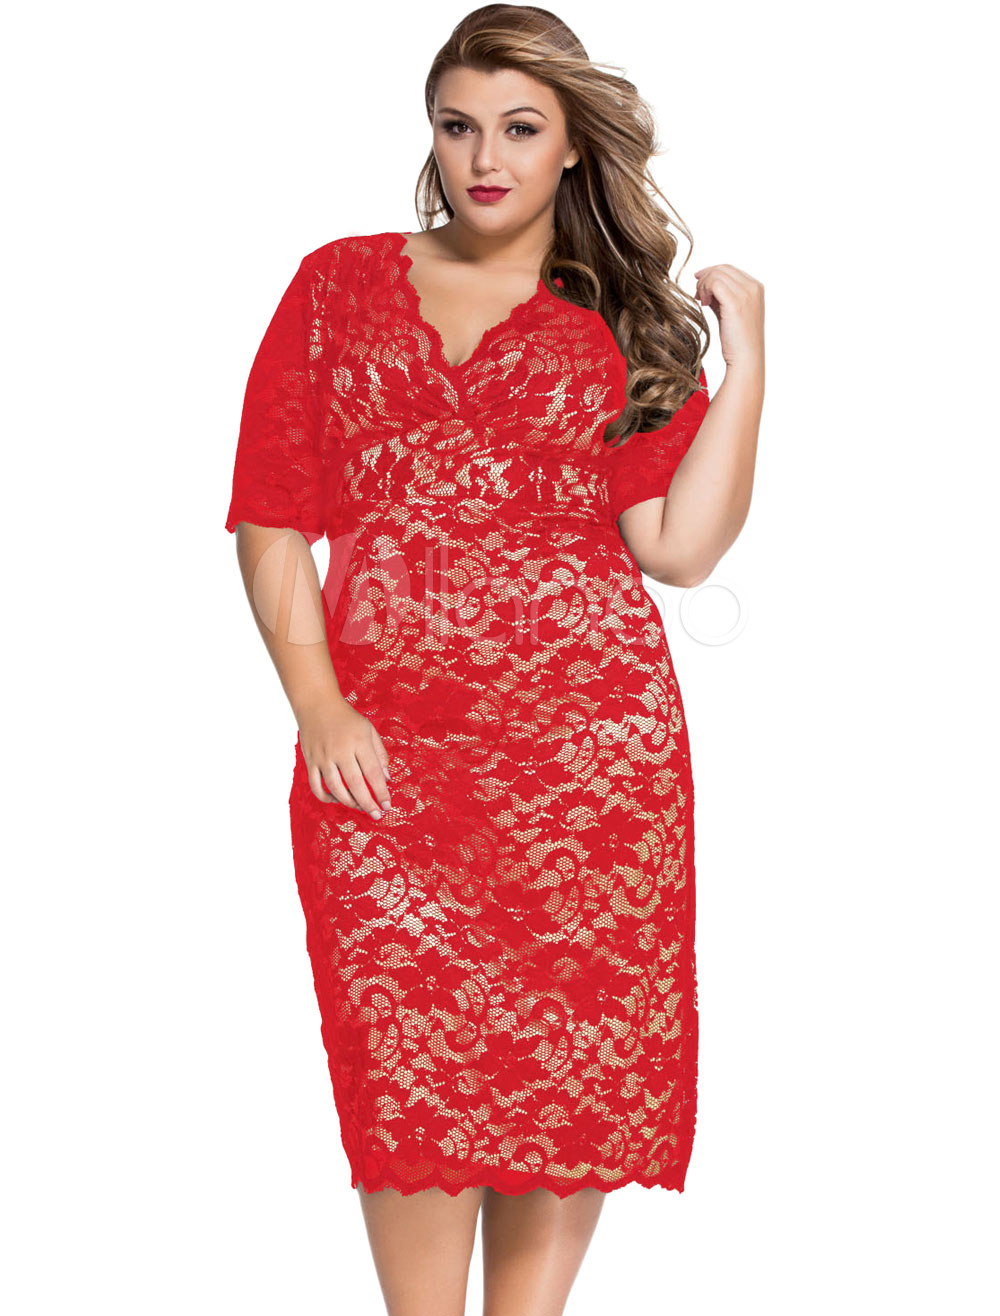 Red Plus Size Dress Lace Midi Knee-Length Dress Cheap clothes, free shipping worldwide